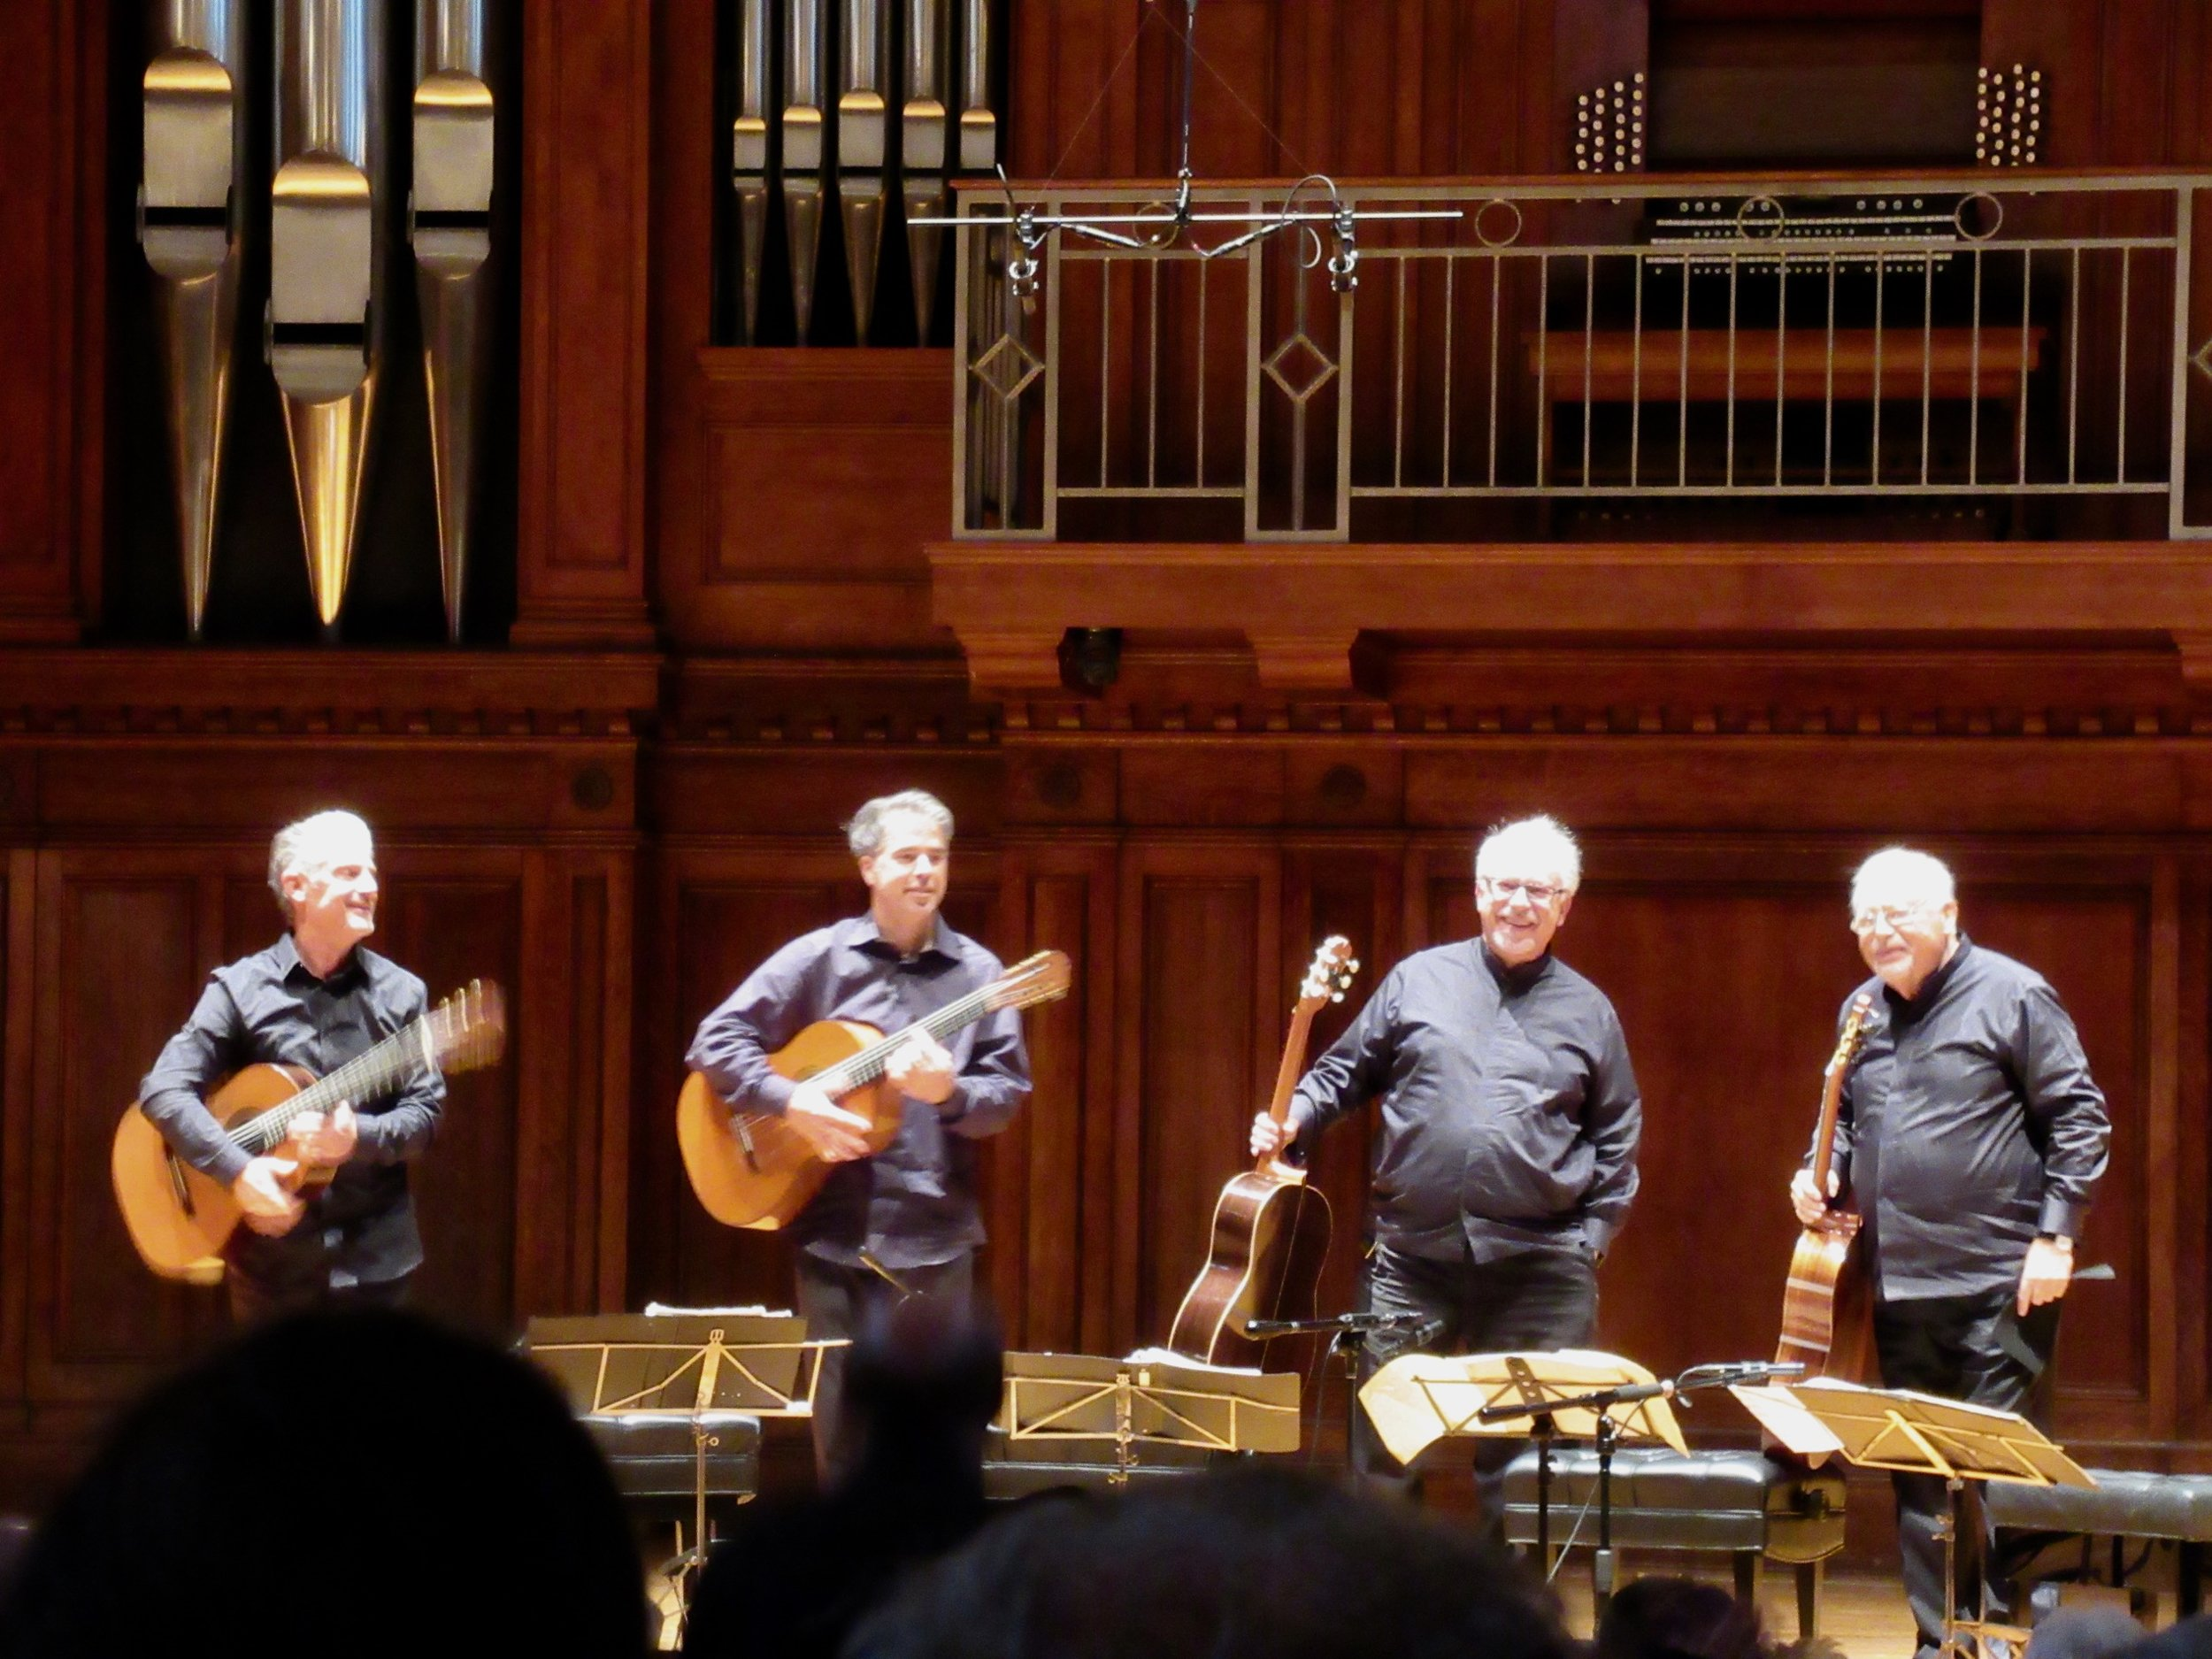 And the quartet responds to the crowd's enthusiasm with two encores.